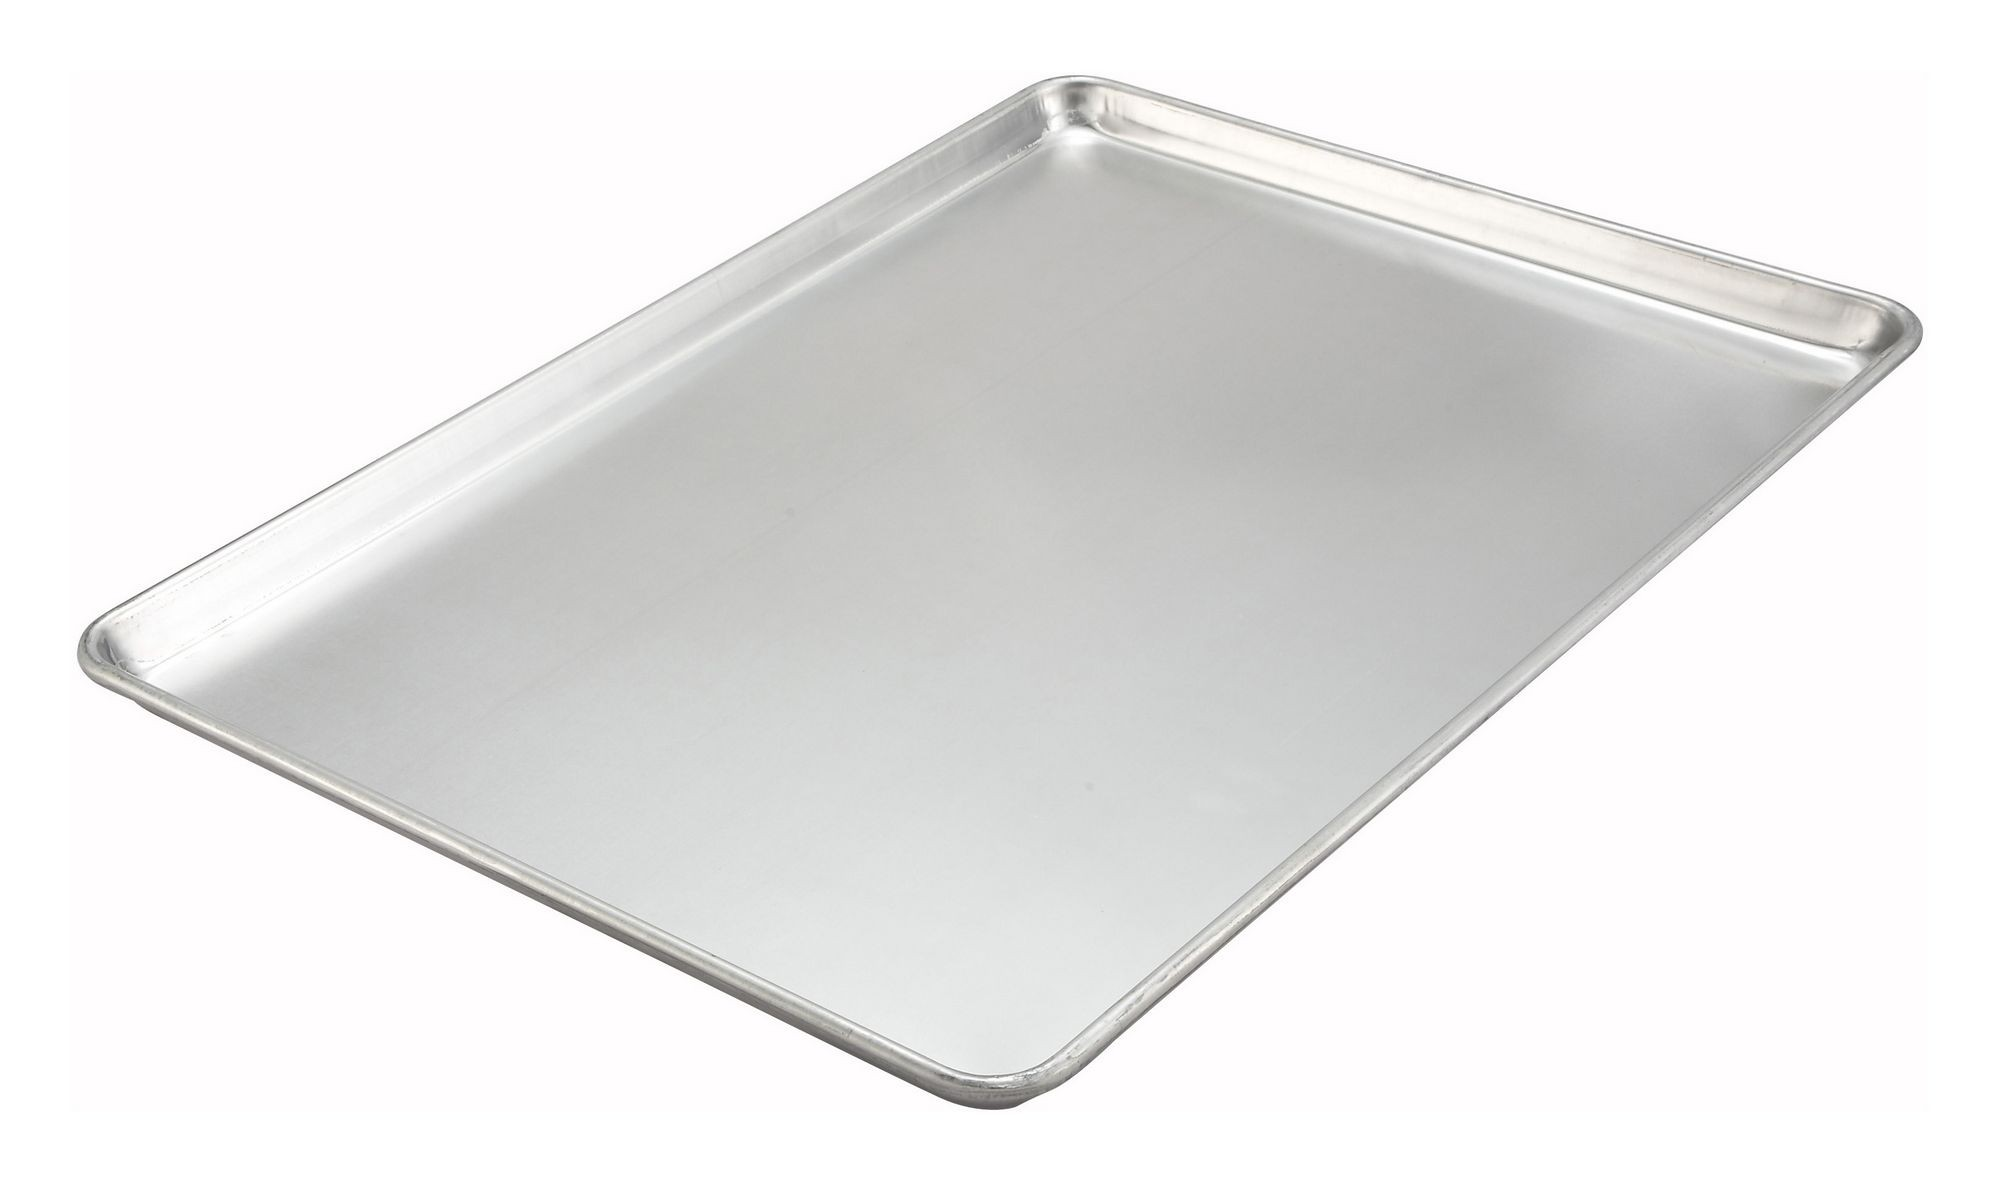 "Winco ALXP-1310H 10"" x 13"" Aluminum 18 Gauge Sheet Pan"